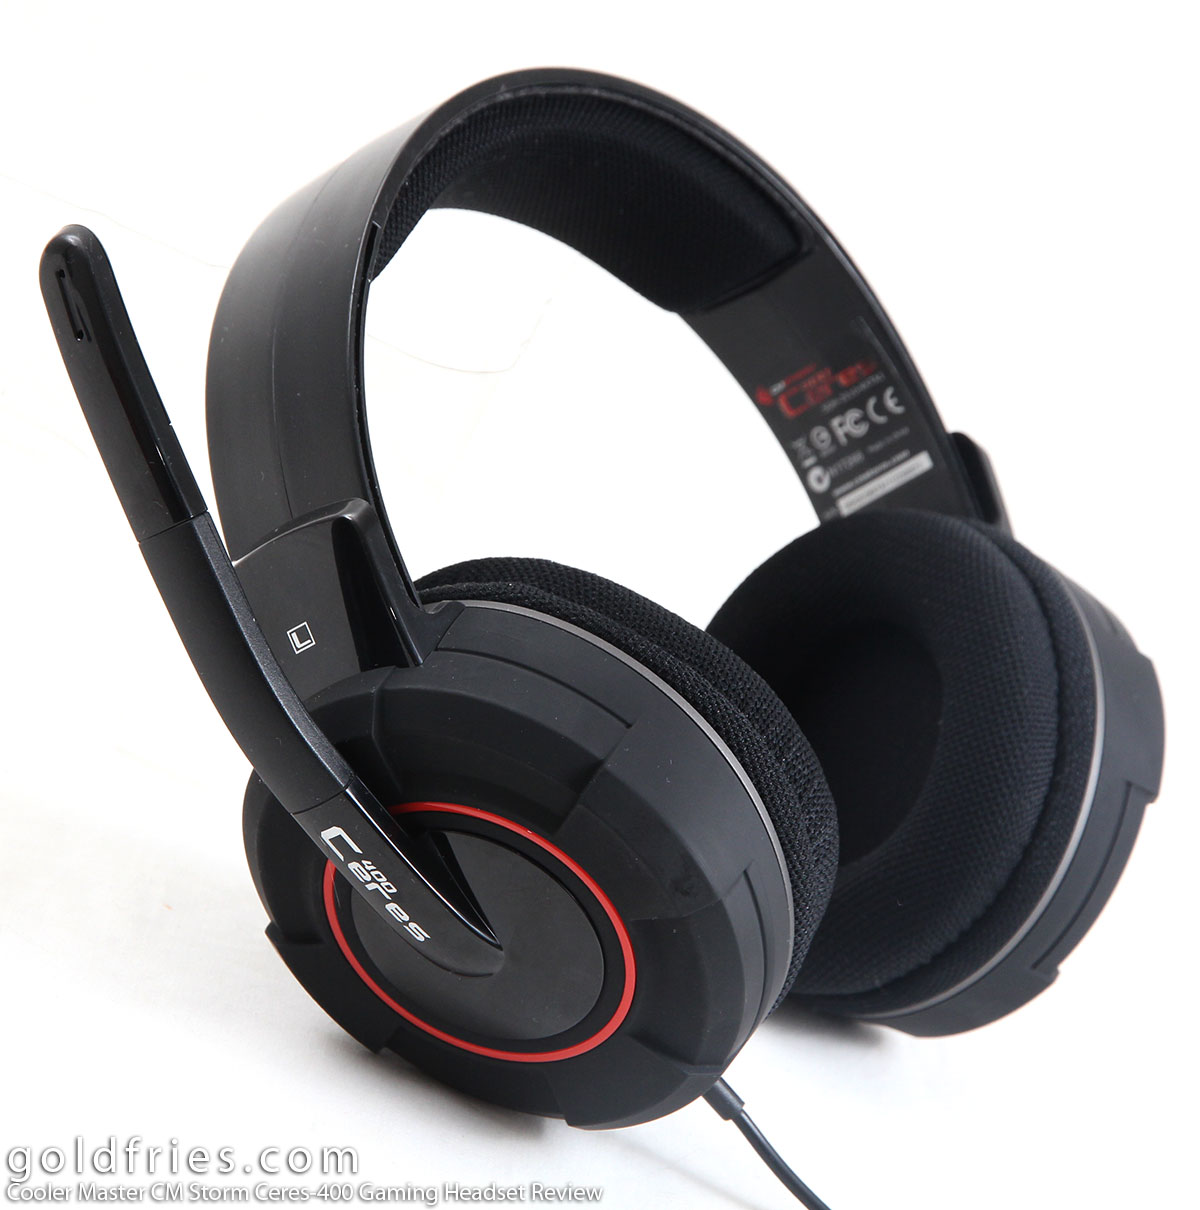 Cooler Master CM Storm Ceres-400 Gaming Headset Review 13